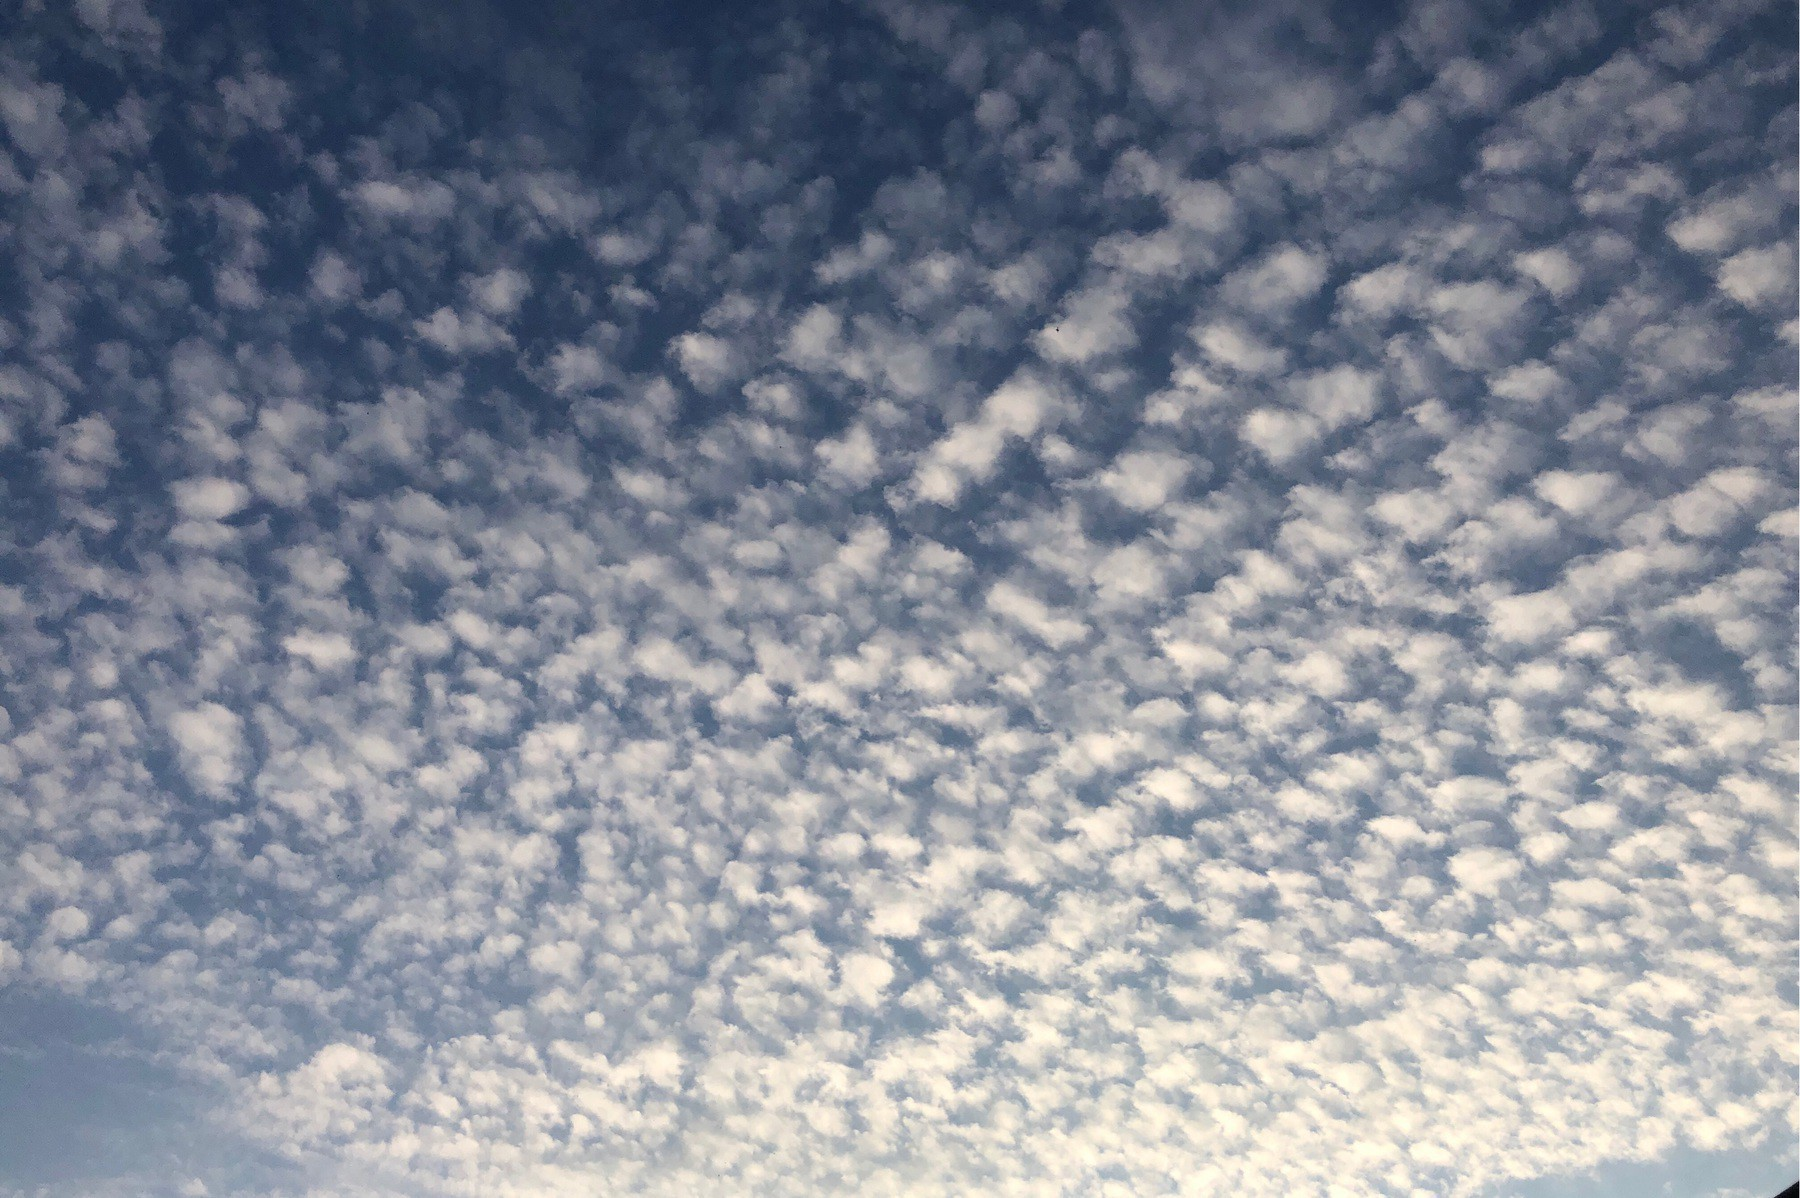 Clouds in evening sky.